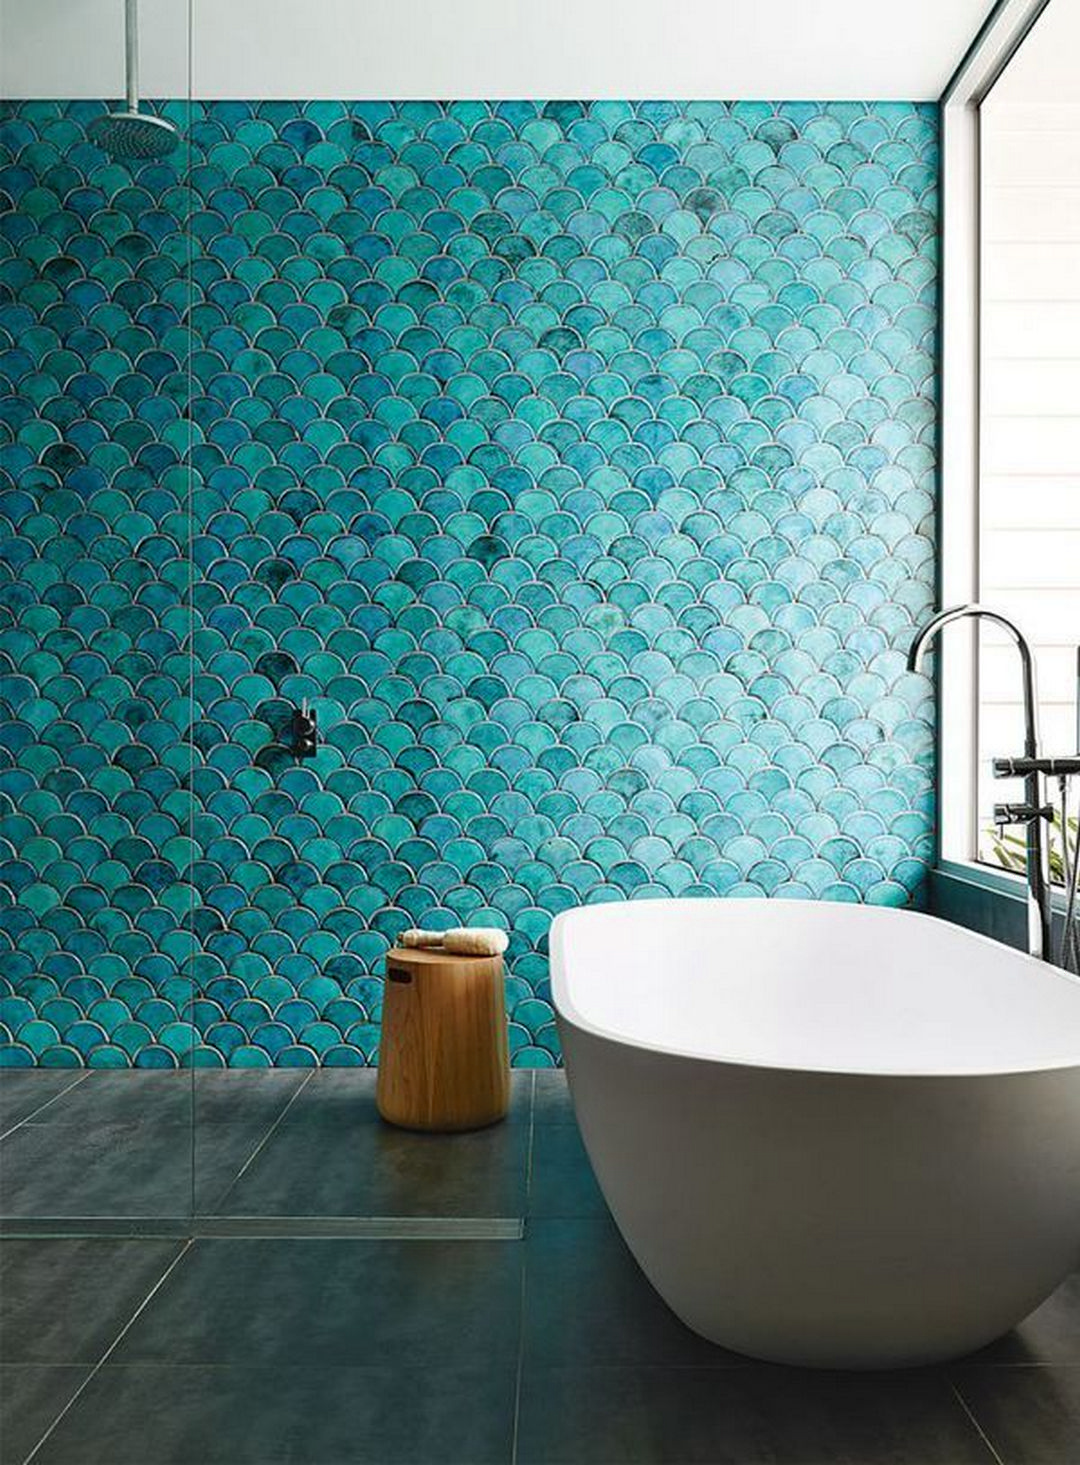 38 Beautiful Fish Scale Tile Bathroom Ideas | tile& bath | Pinterest ...